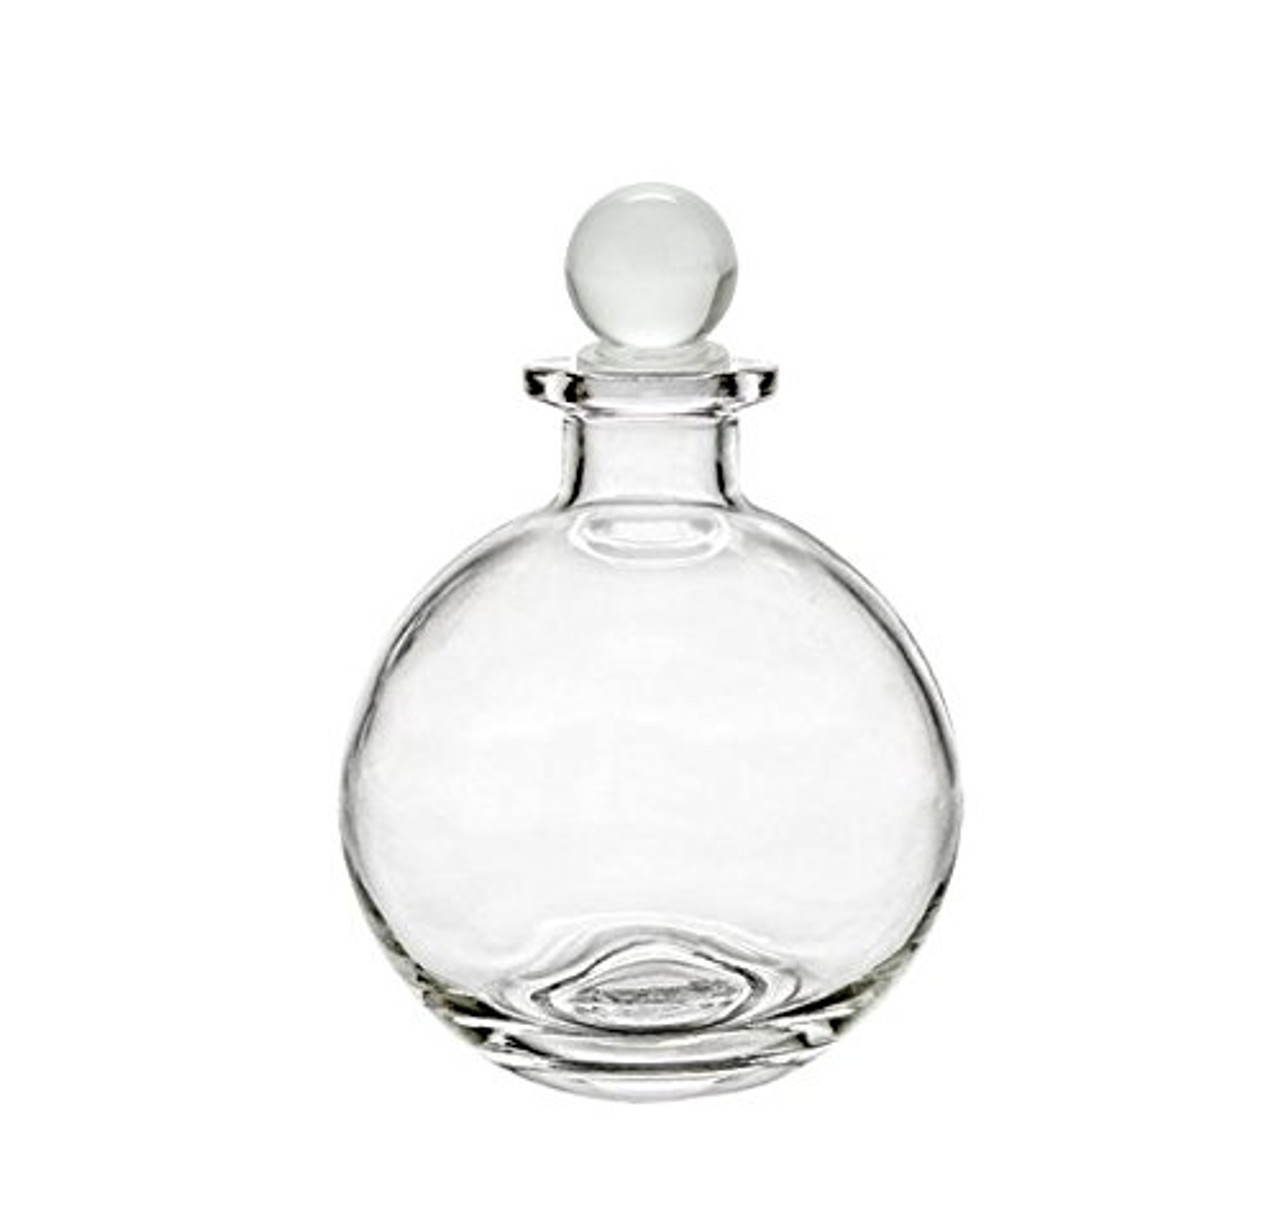 Nakpunar Spherical Glass Bottle with Glass Bottle Stopper